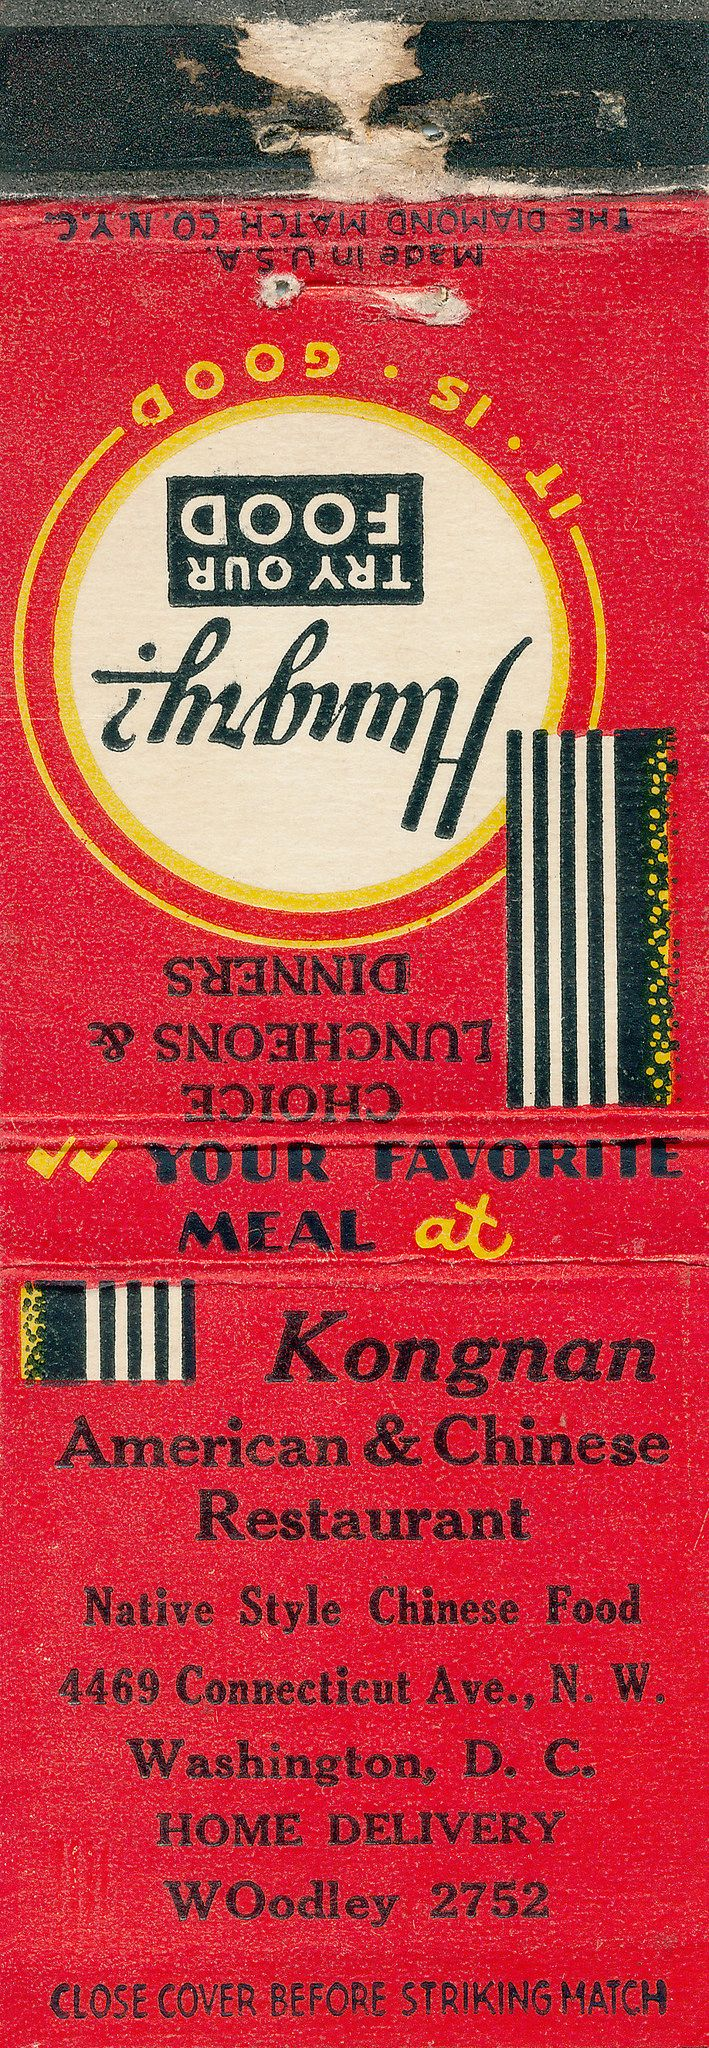 https://flic.kr/p/P7kZ7G | Kongnan Restaurant (1940s) | The Kongnan American and Chinese Restaurant was located in the Van Ness area in the 1940s, in a small storefront just north of the Chevy Chase Ice Palace. When the proprietors applied for a liquor license in 1944, the local citizens association objected on the grounds that lots of kids frequented the ice palace nearby. The owner protested that he would never serve alcohol to minors, but his application was denied anyway. The site was…